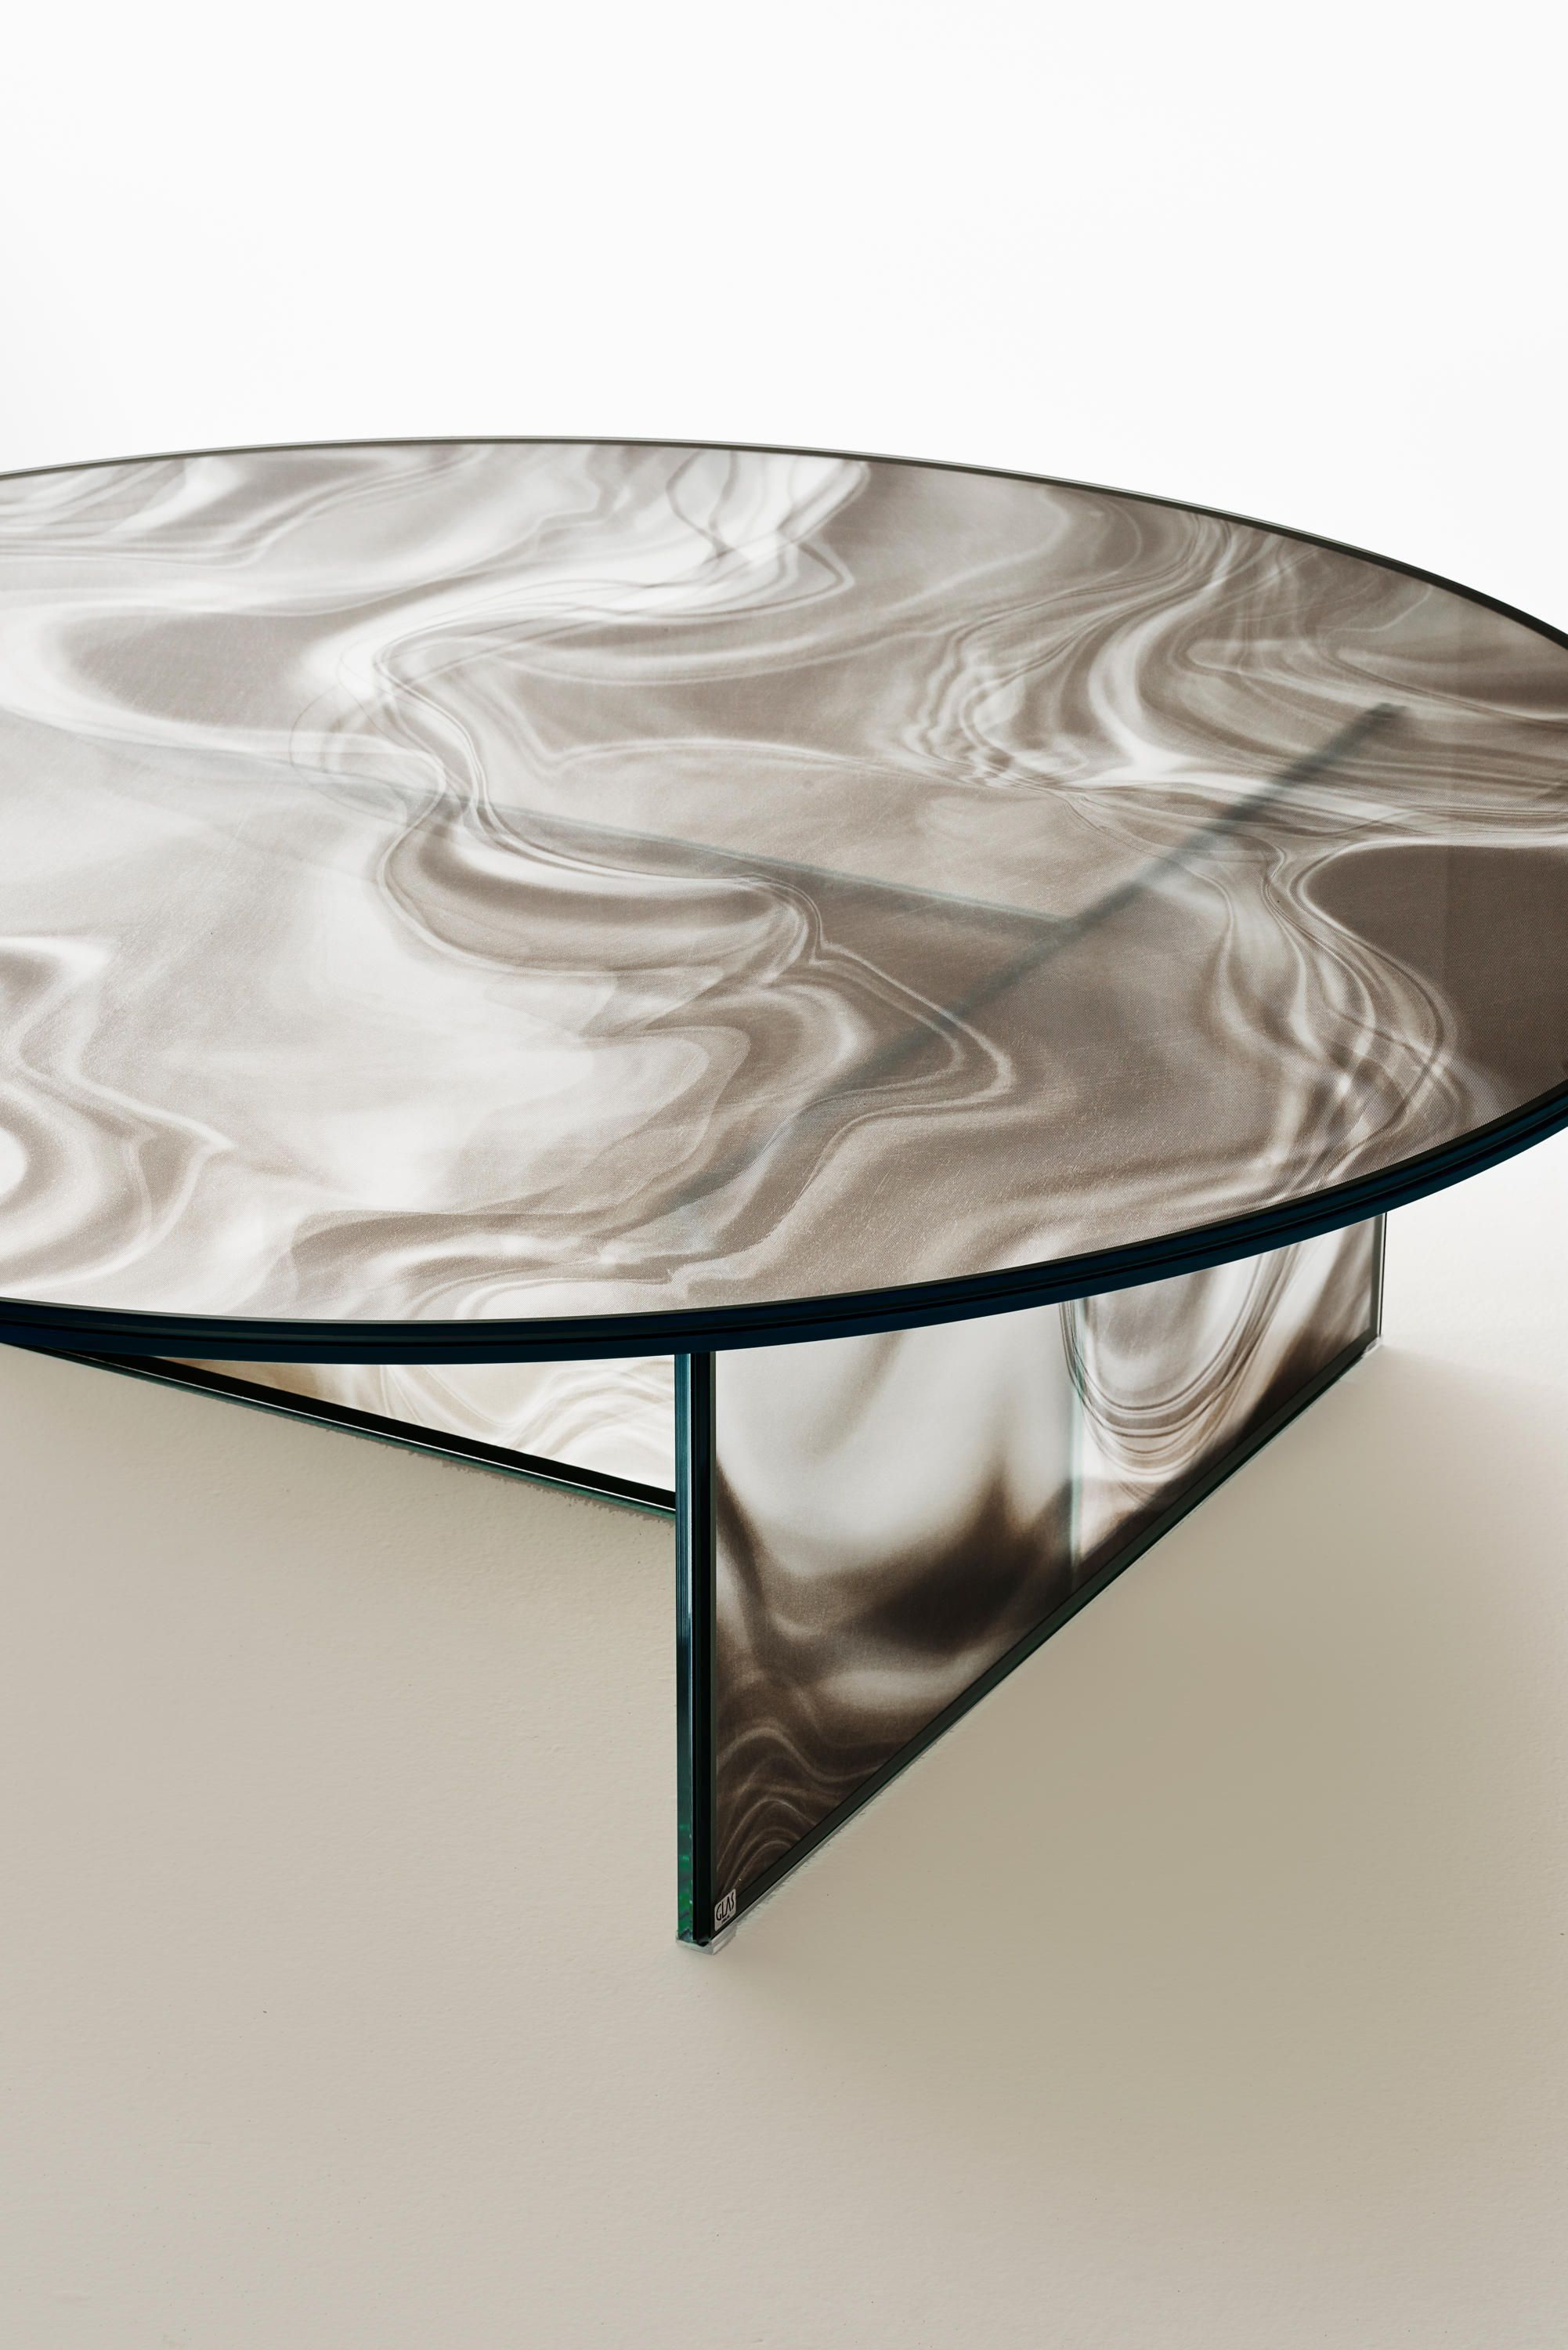 Liquefy Designer Coffee Tables From Glas Italia All Information High Resolution Images Cads Catalog Diy Coffee Table Coffee Table Design Coffee Table [ 3000 x 2002 Pixel ]